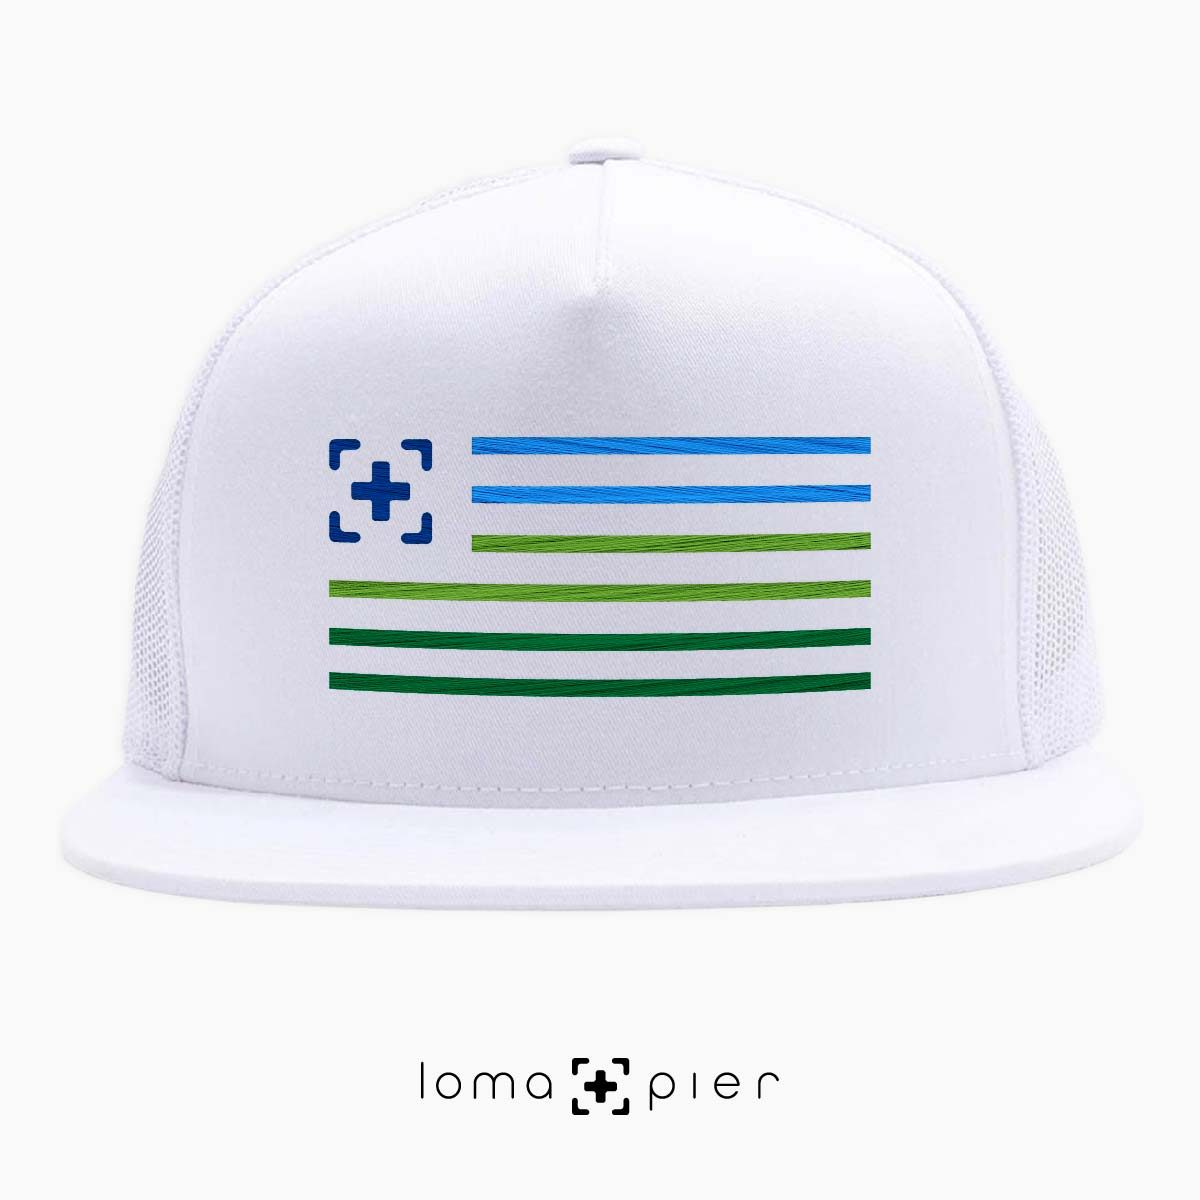 loma+stripes beach netback hat in white by loma+pier hat store